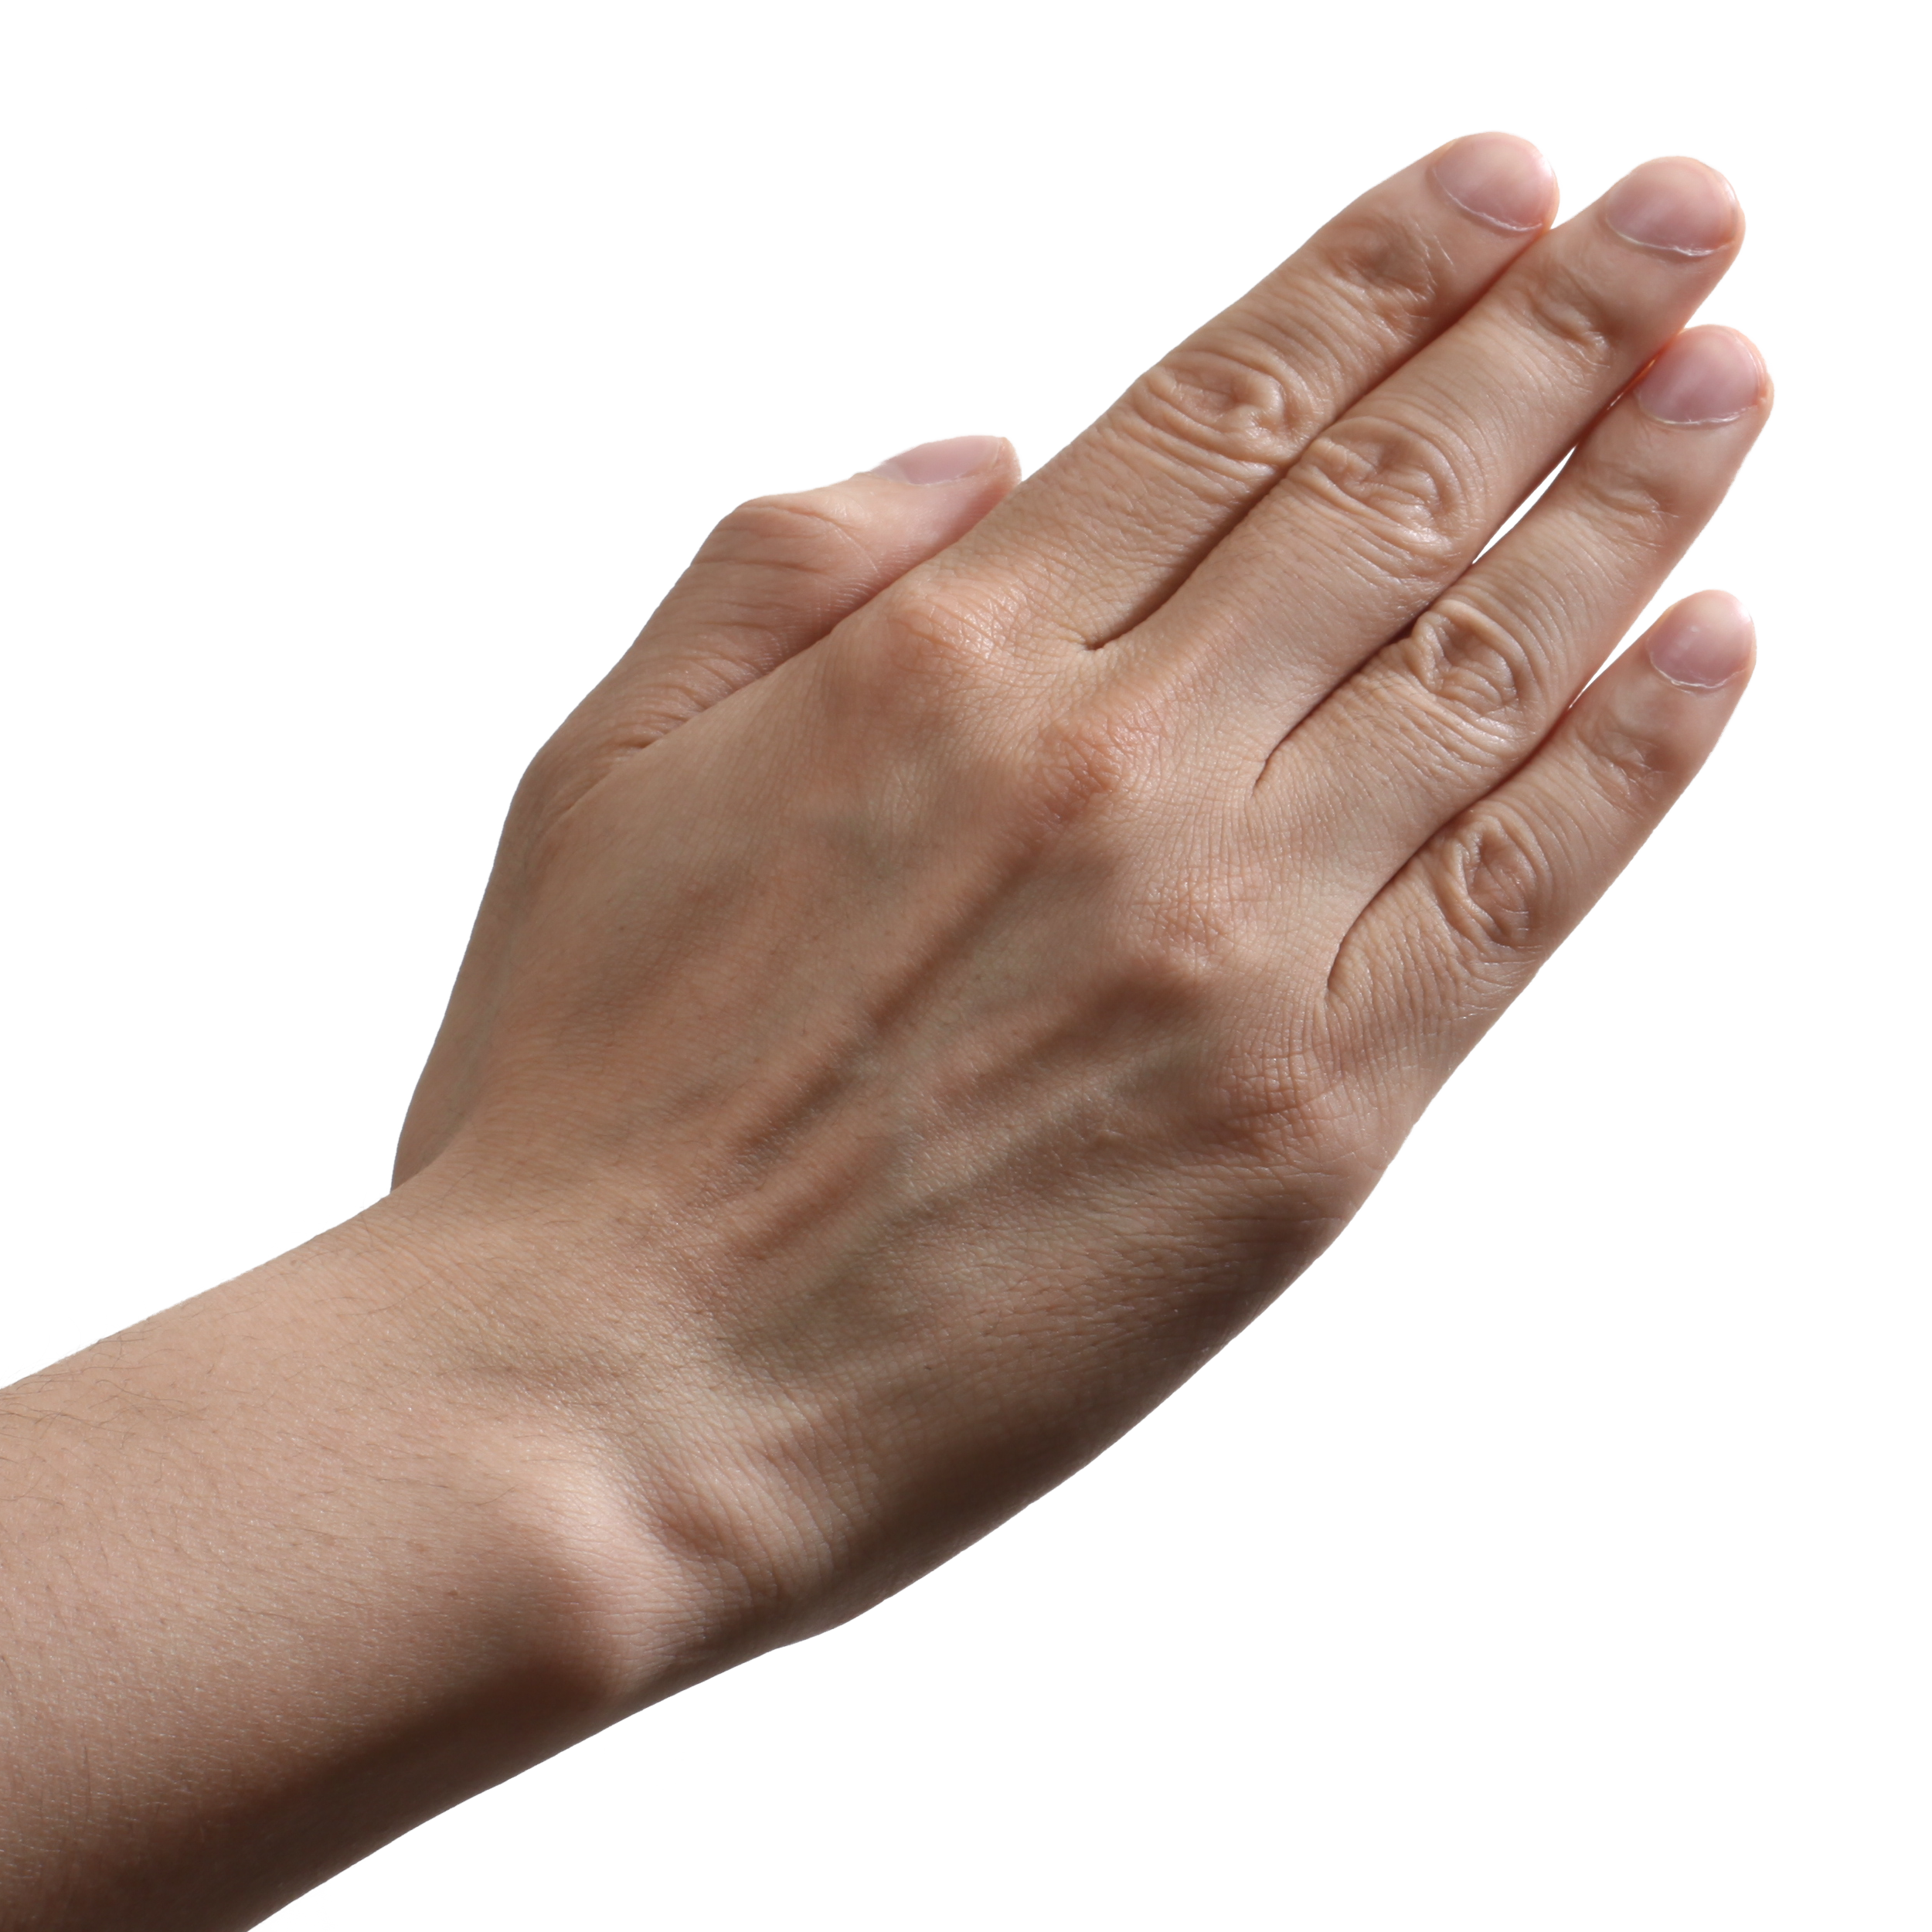 Hands Png, Hand Image Picture image #44749